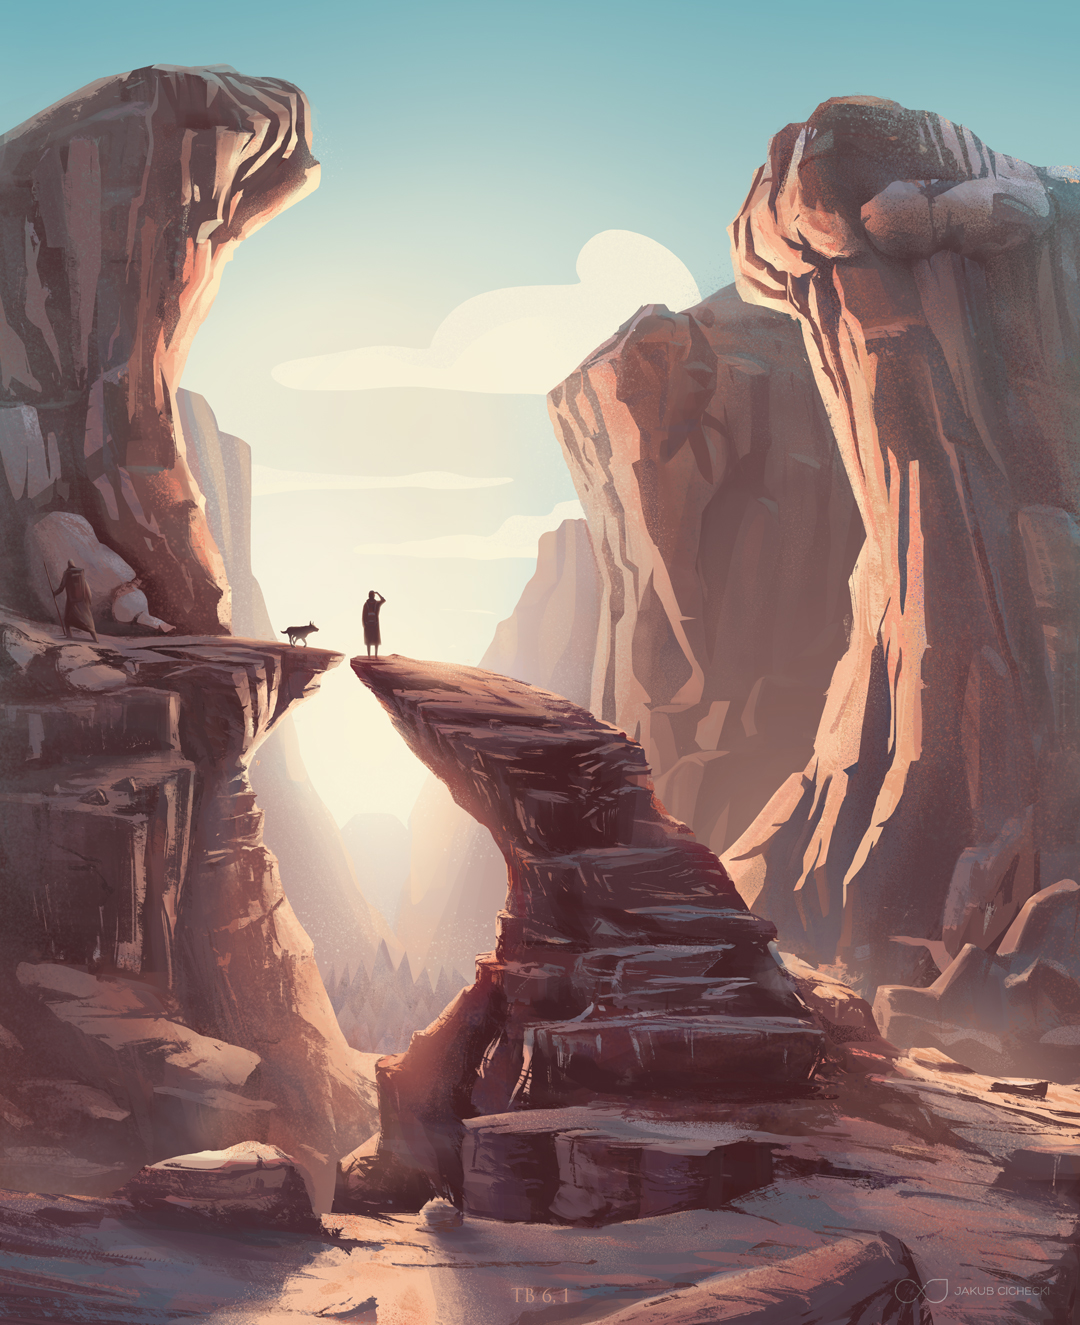 Tobias in canyon - epic illustration for the Book of Tobit from the Bible by Jakub Cichecki